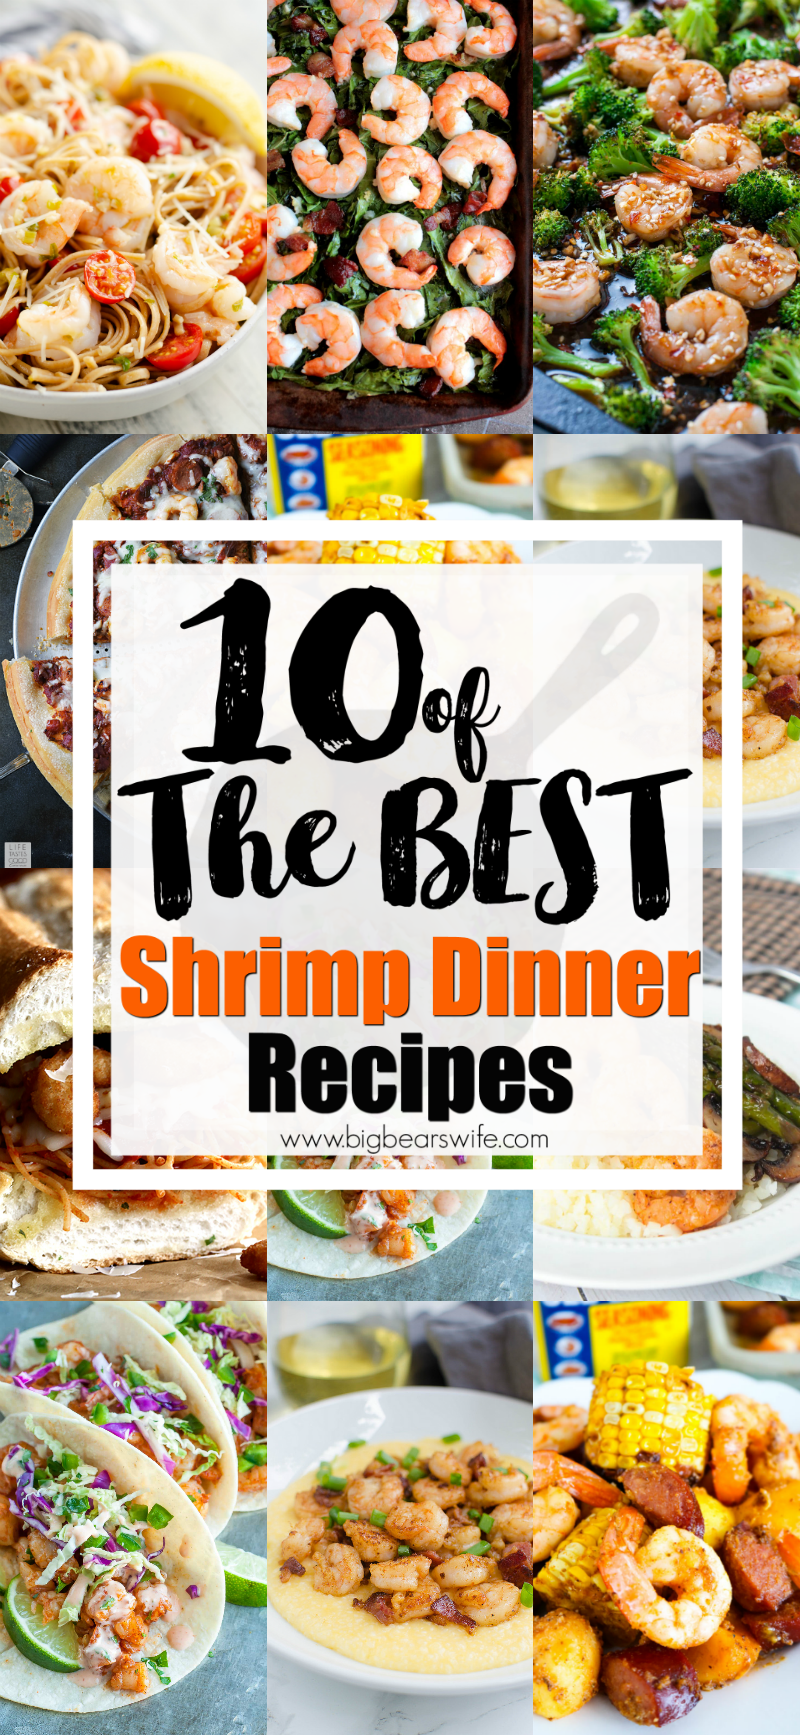 10 of the Best Shrimp Dinner Recipes - If you're looking for some seafood dinner ideas I've got 10 of the Best Shrimp Dinner Recipes for you to try!